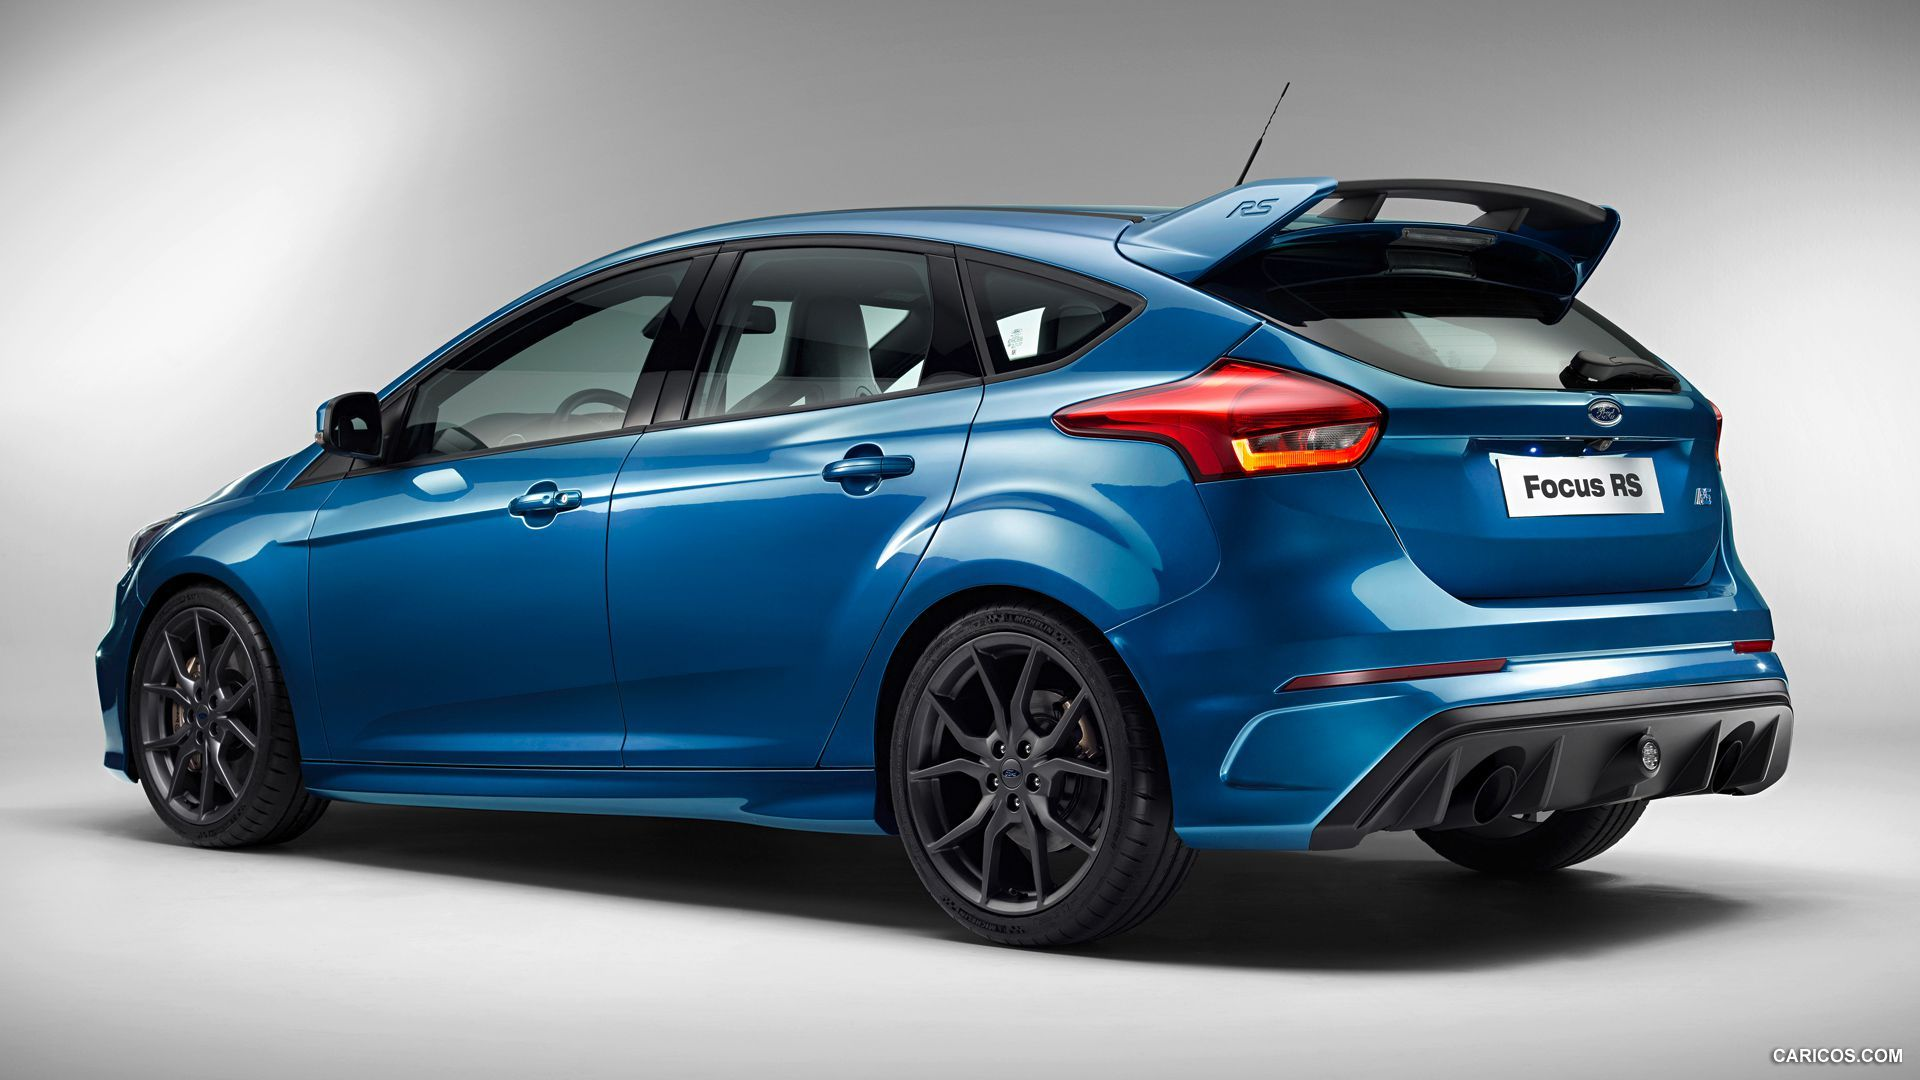 Ford Fusion Price In India Ford Focus Rs Ford Focus New Ford Focus